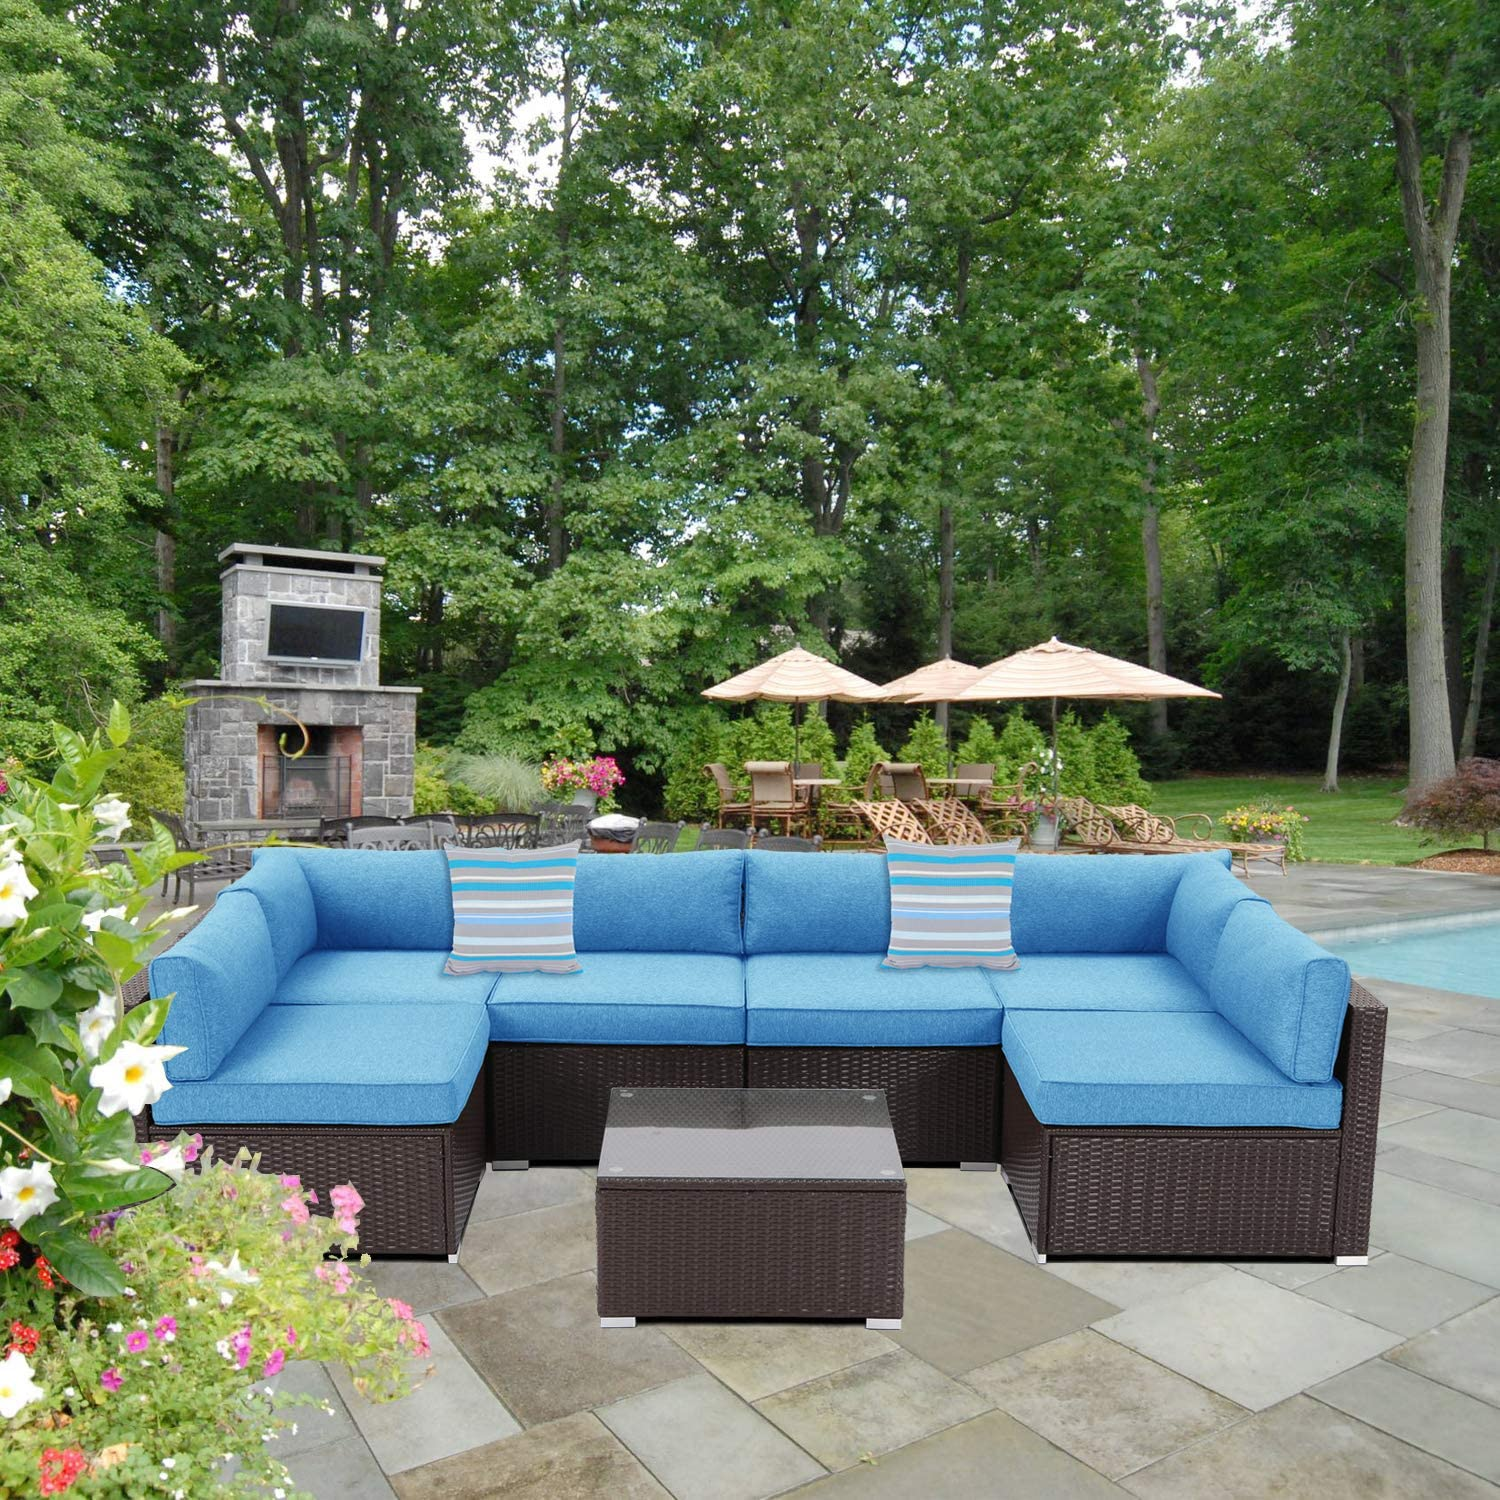 Sunbury Outdoor Sectional 7 Piece Espresso Brown Wicker Sofa Patio Furniture Set W 2 Stripe Pillows Denim Blue Cushions Tempered Glass Table Weatherproof Cover For Backyard Kitchen Dining